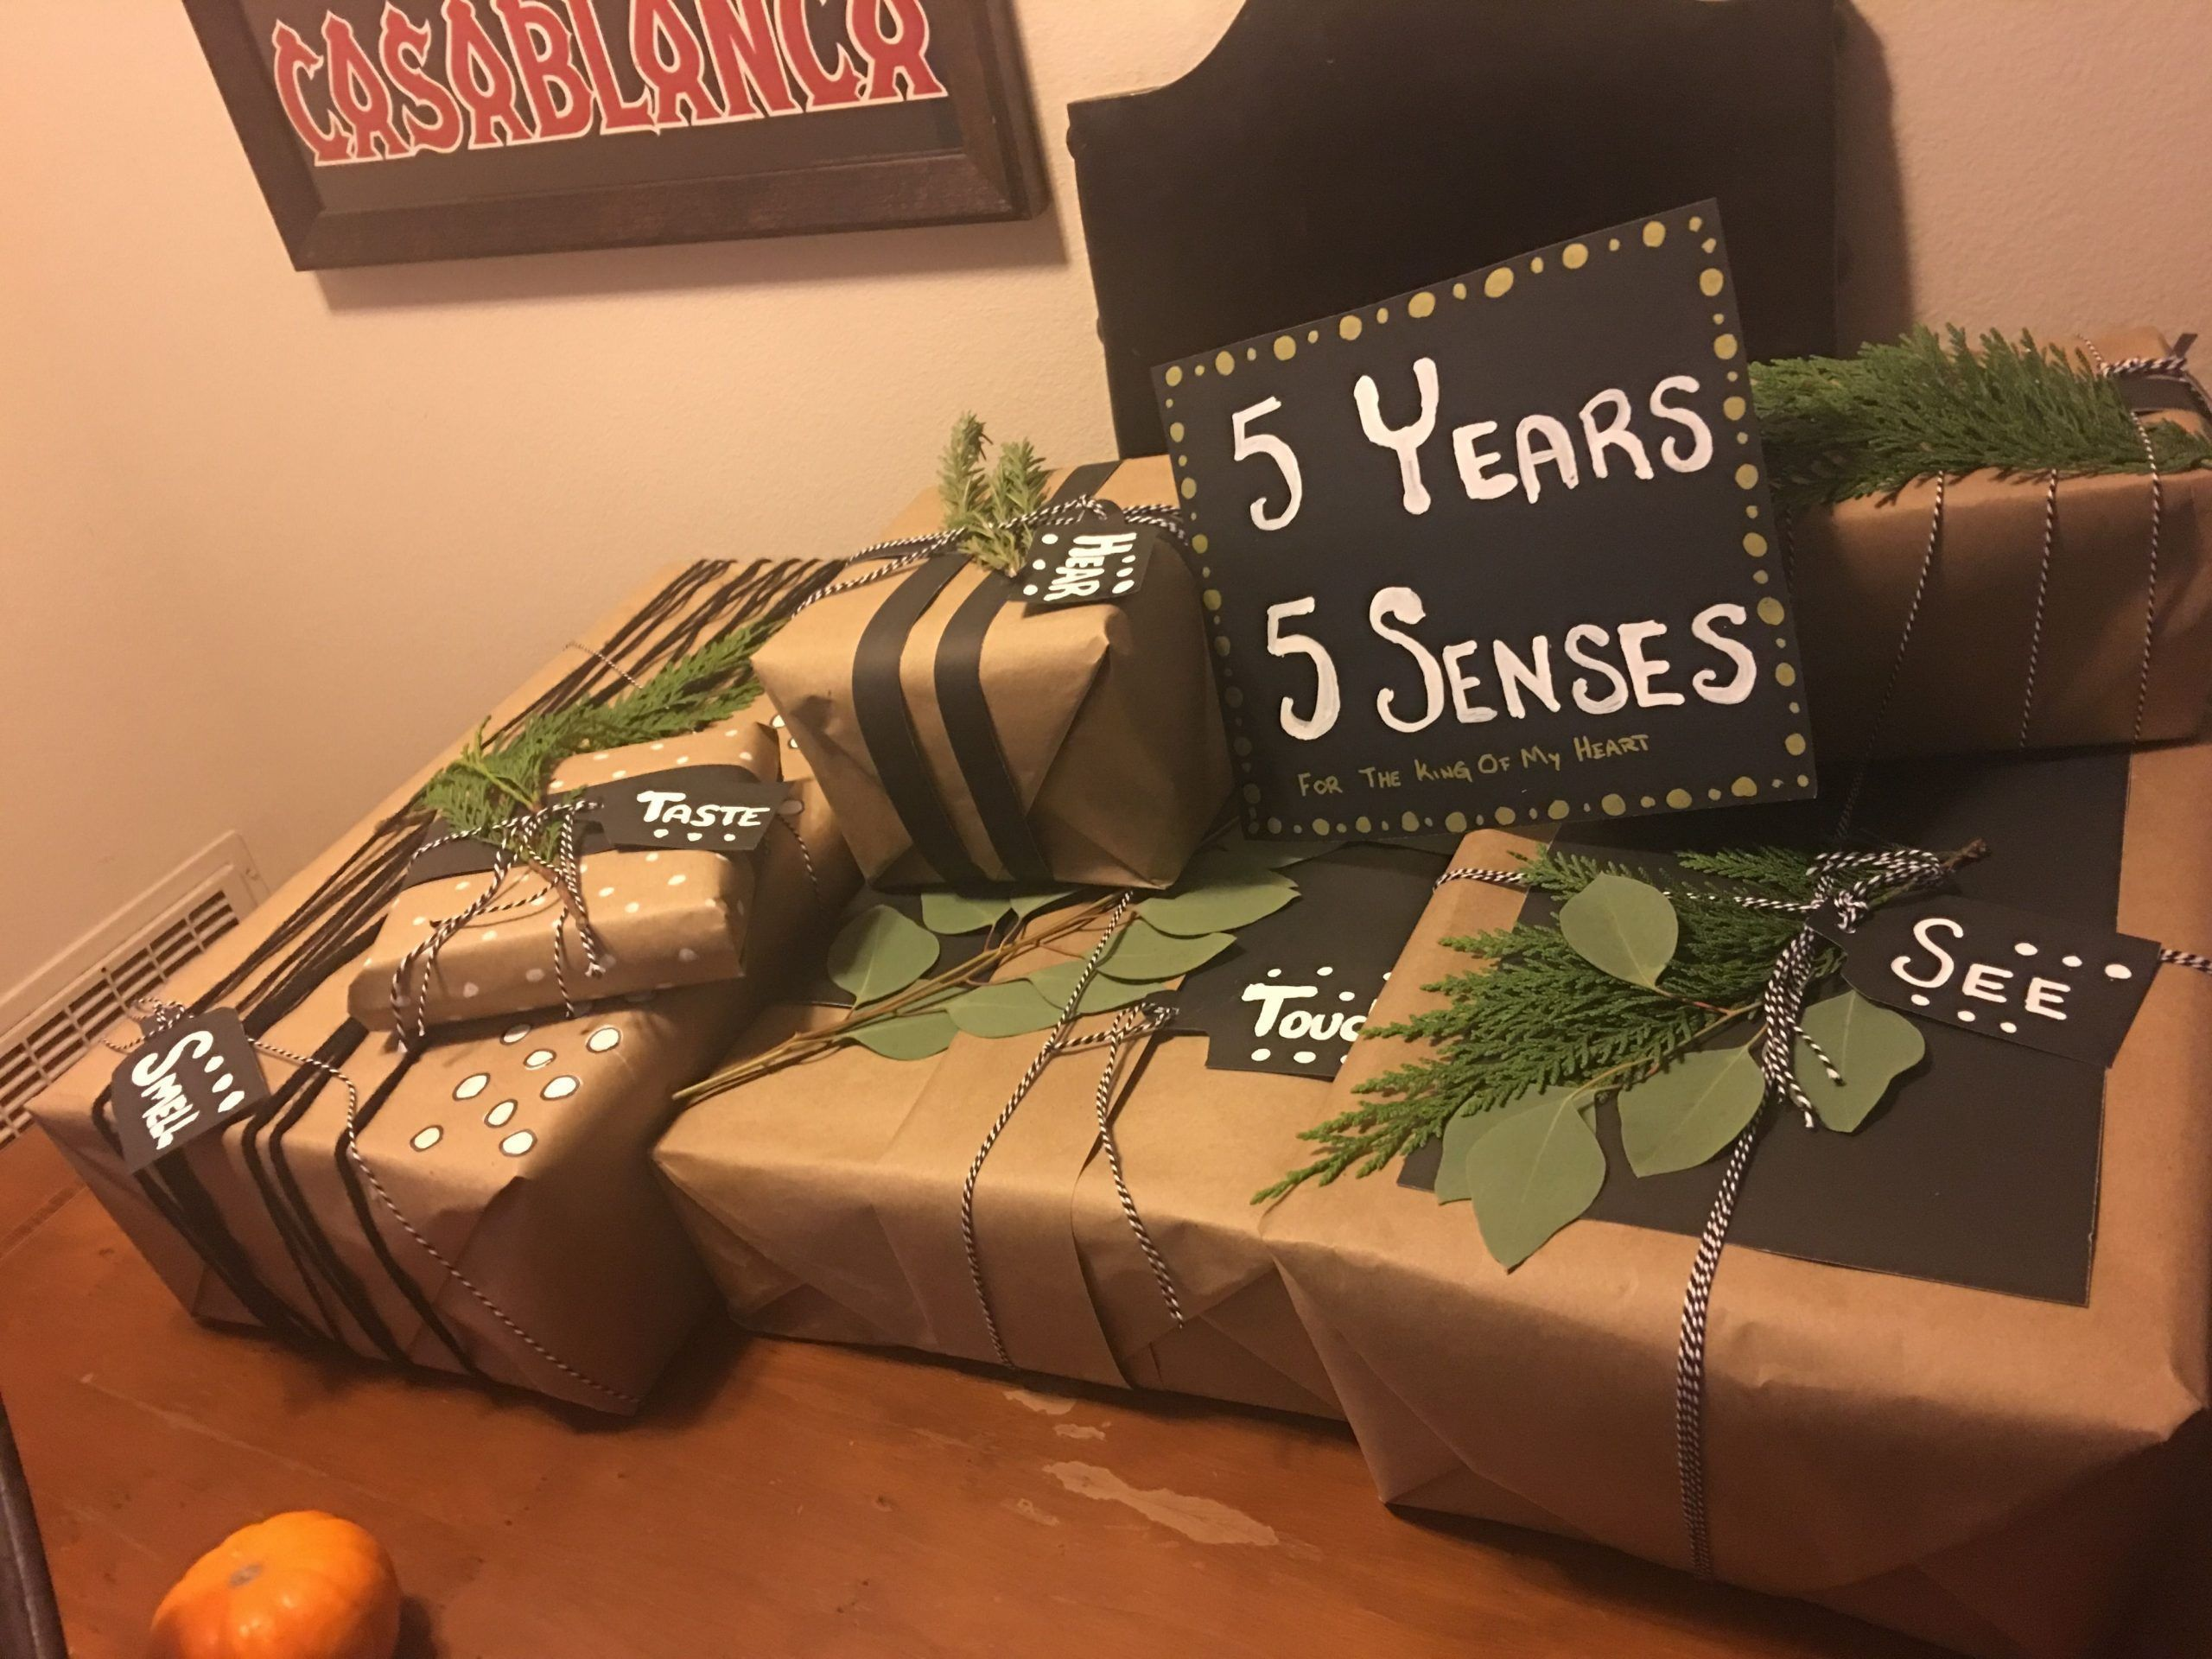 5 Senses Gift For Him 5 Year Anniversary Anniversary Gift Senses Year Ann In 2020 5 Year Anniversary Gift Romantic Anniversary Gifts Traditional Anniversary Gifts